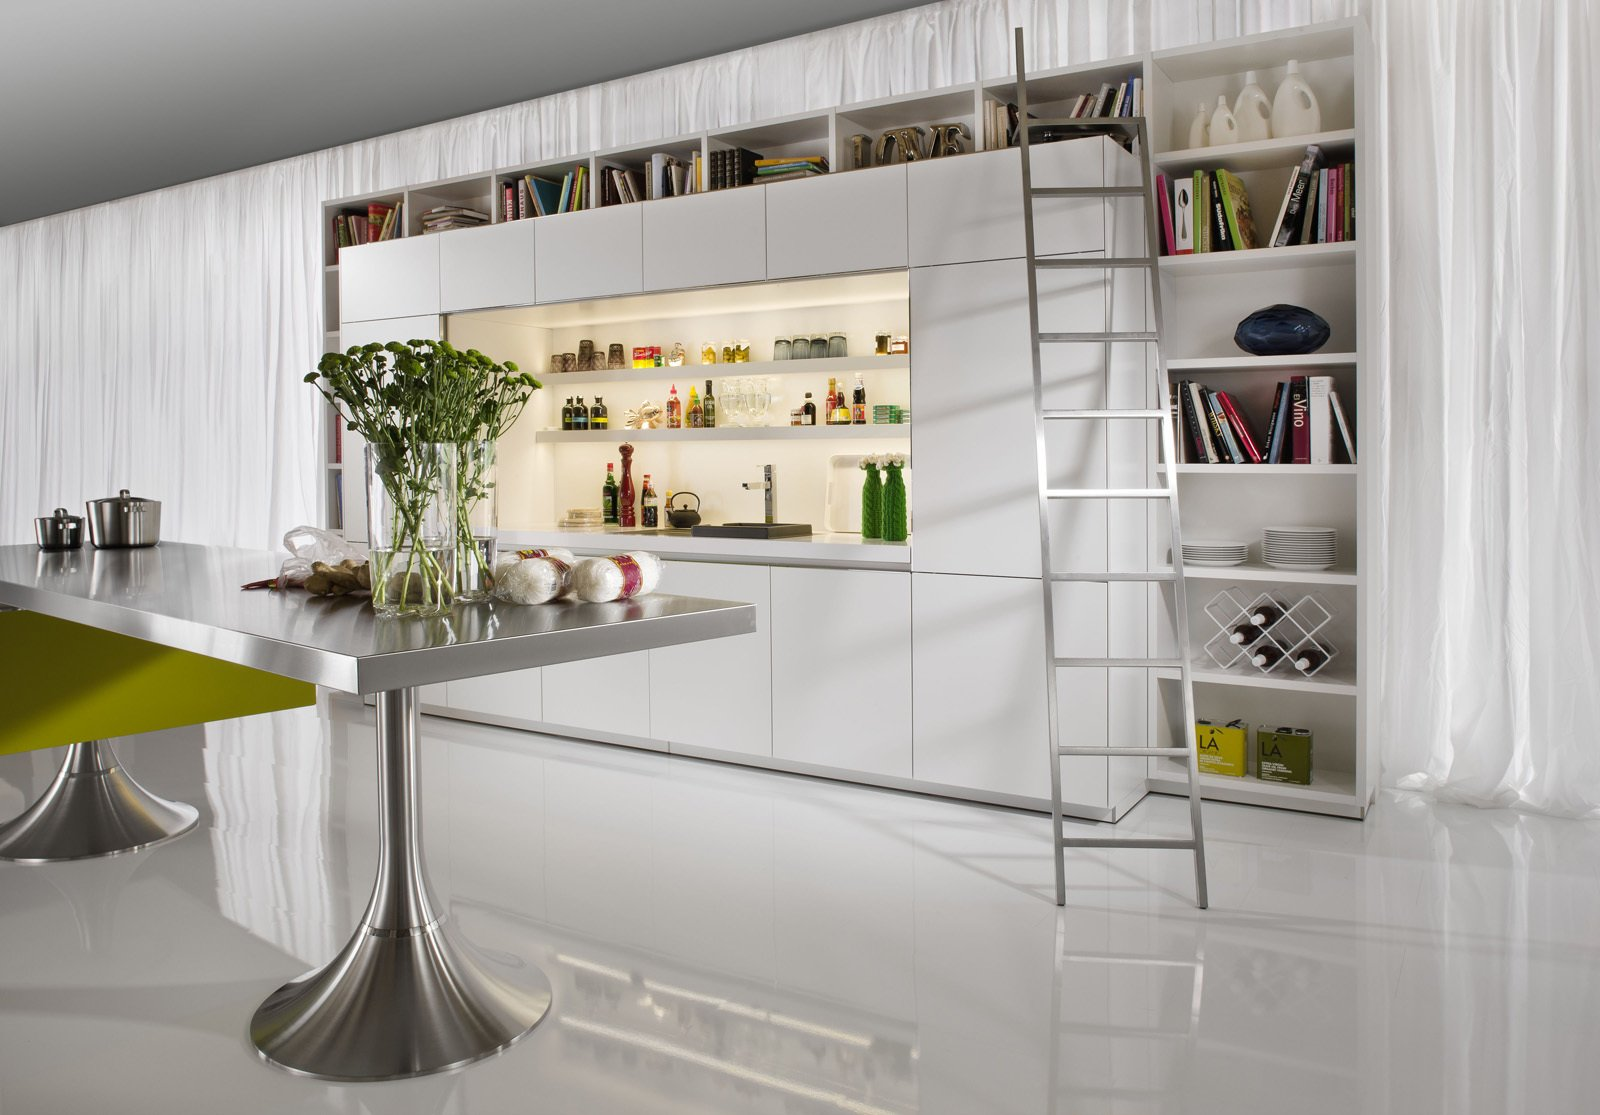 Philippe Starck's modern Library Kitchen won an imm Cologne 2011 Interior Innovation Award.  Photo 7 of 7 in Philippe Starck's Library Kitchen